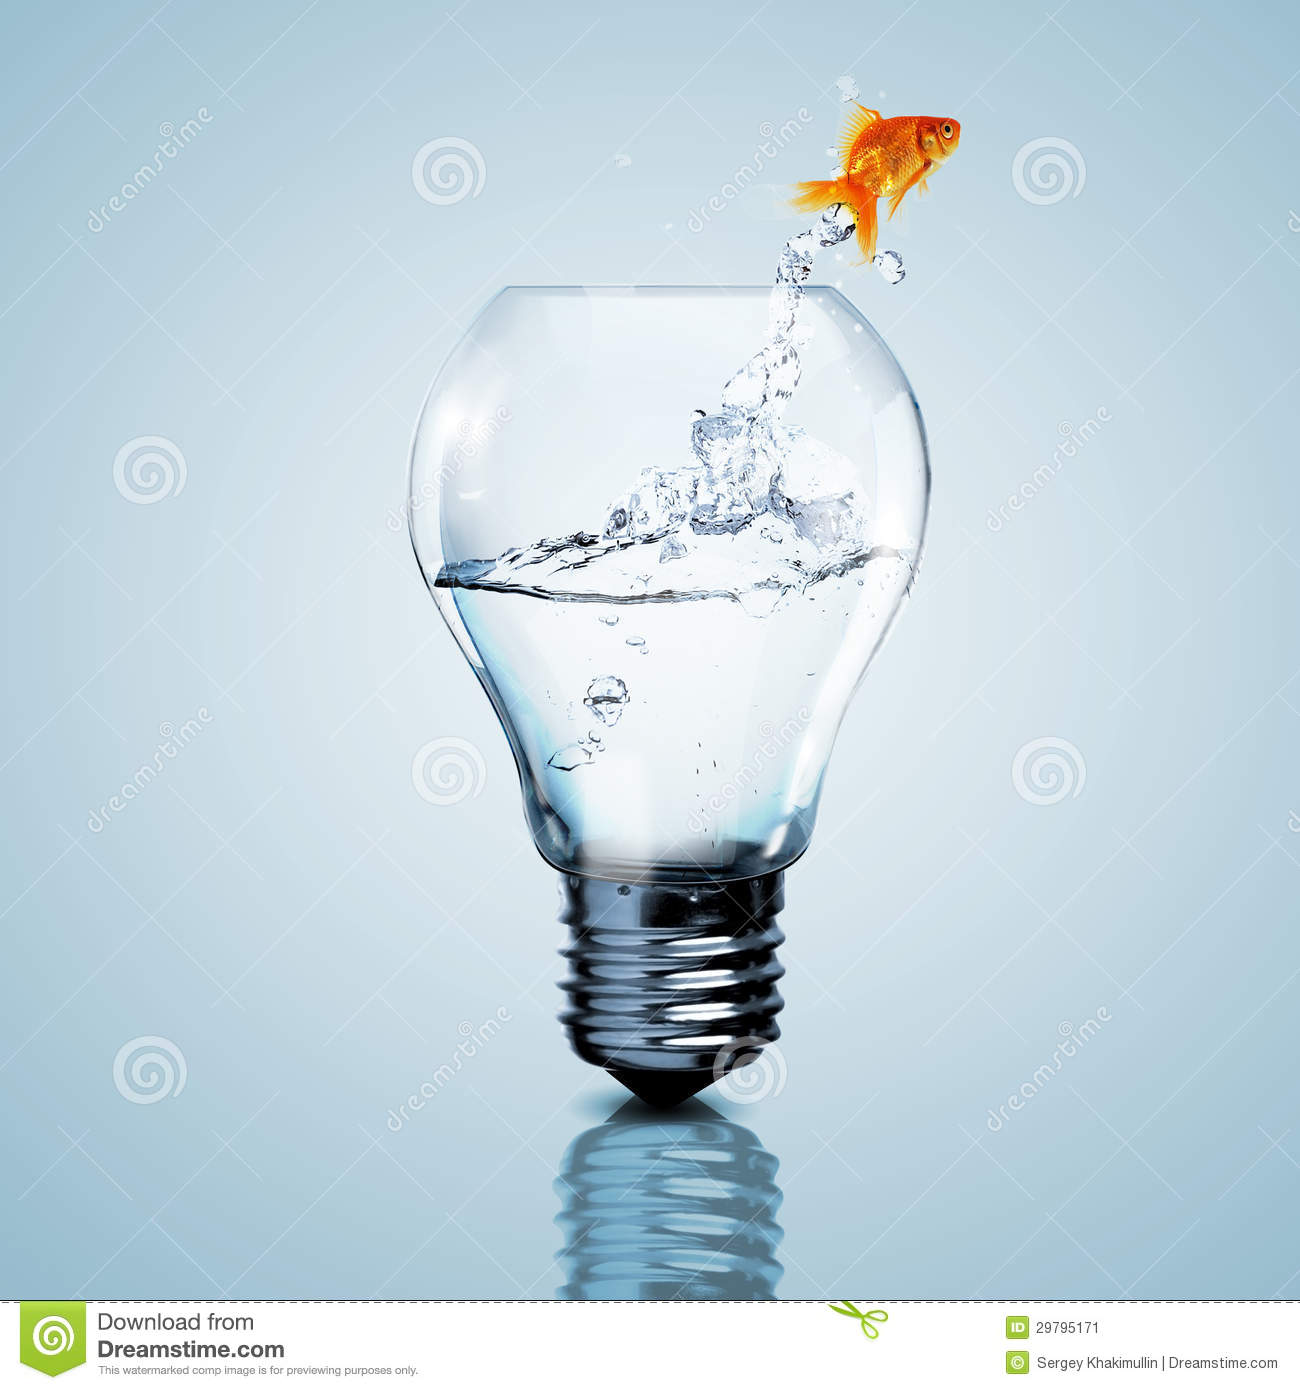 gold fish inside an electric bulb stock image image of bulb